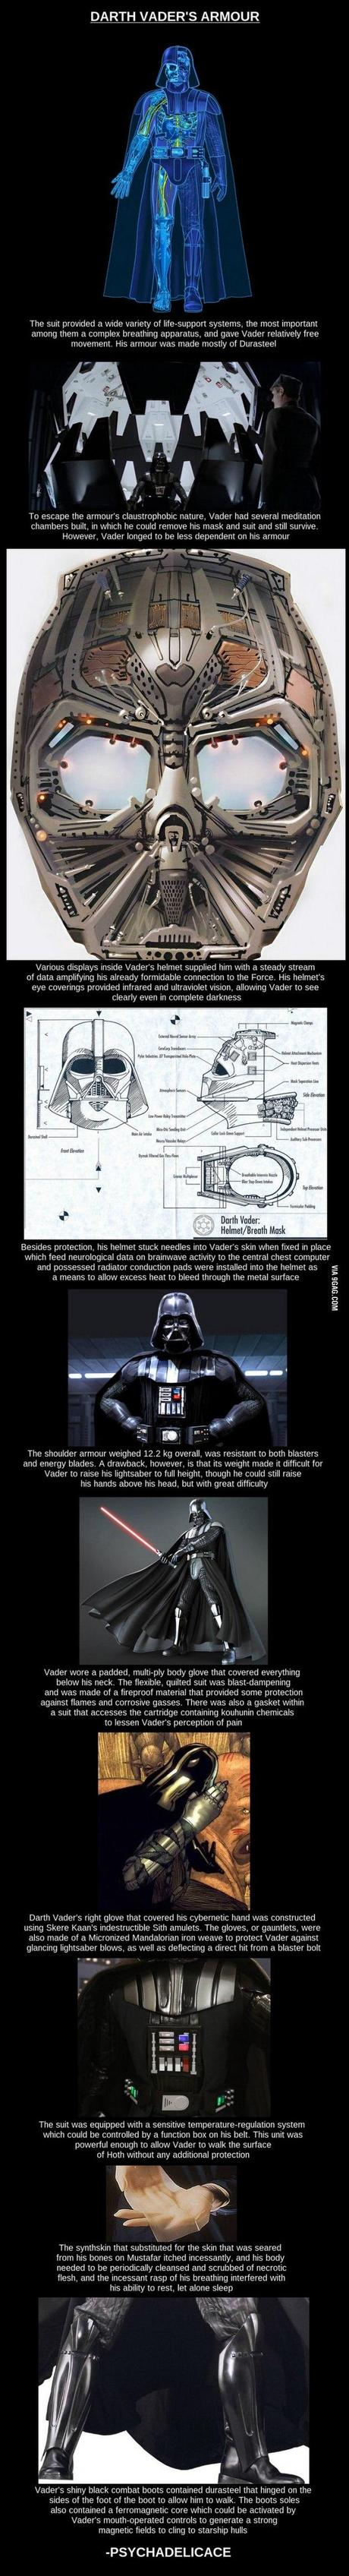 darth-vader-armor-graphic